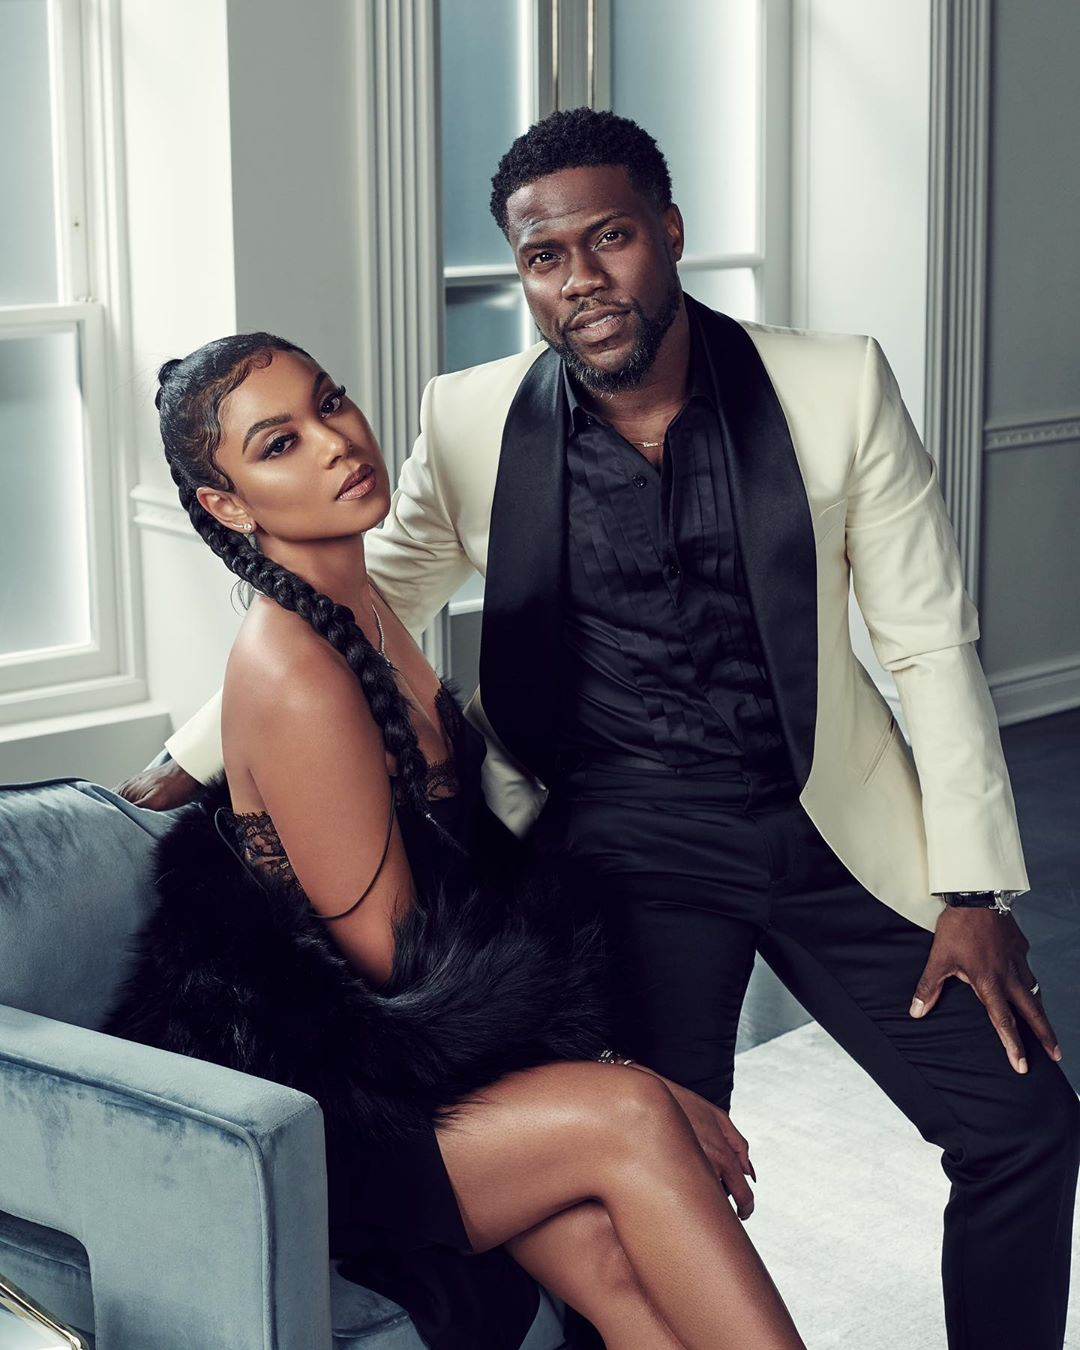 Kevin Hart and Eniko Parrish expecting their second child together